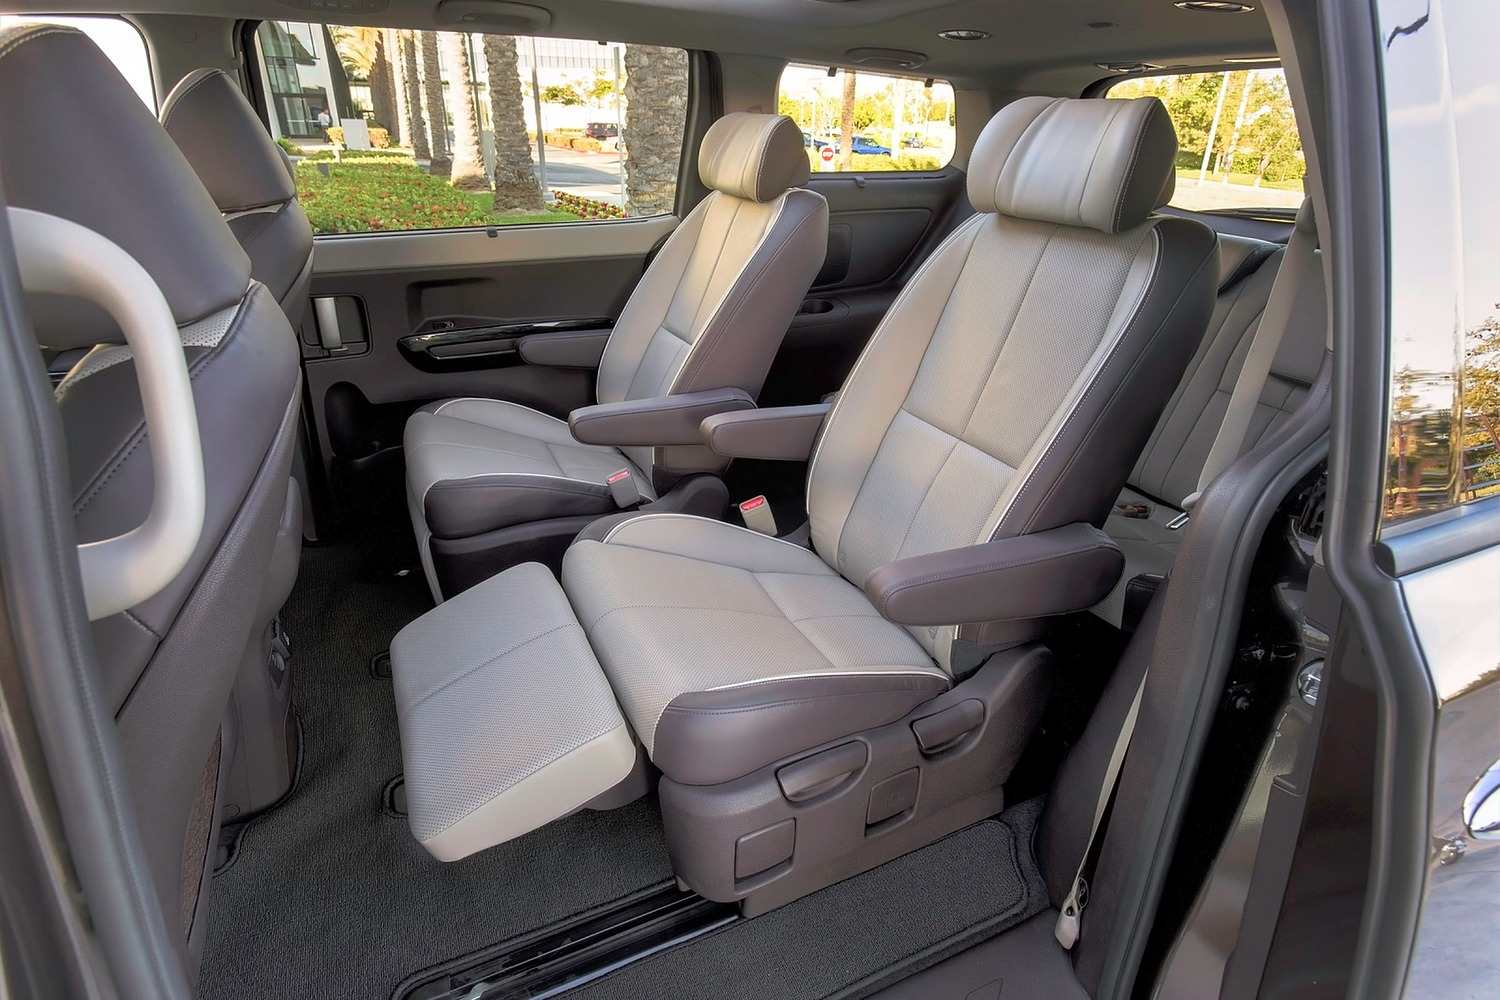 Kia Sedona SX Limited Passenger Minivan Rear Interior Shown (2016 model year shown)